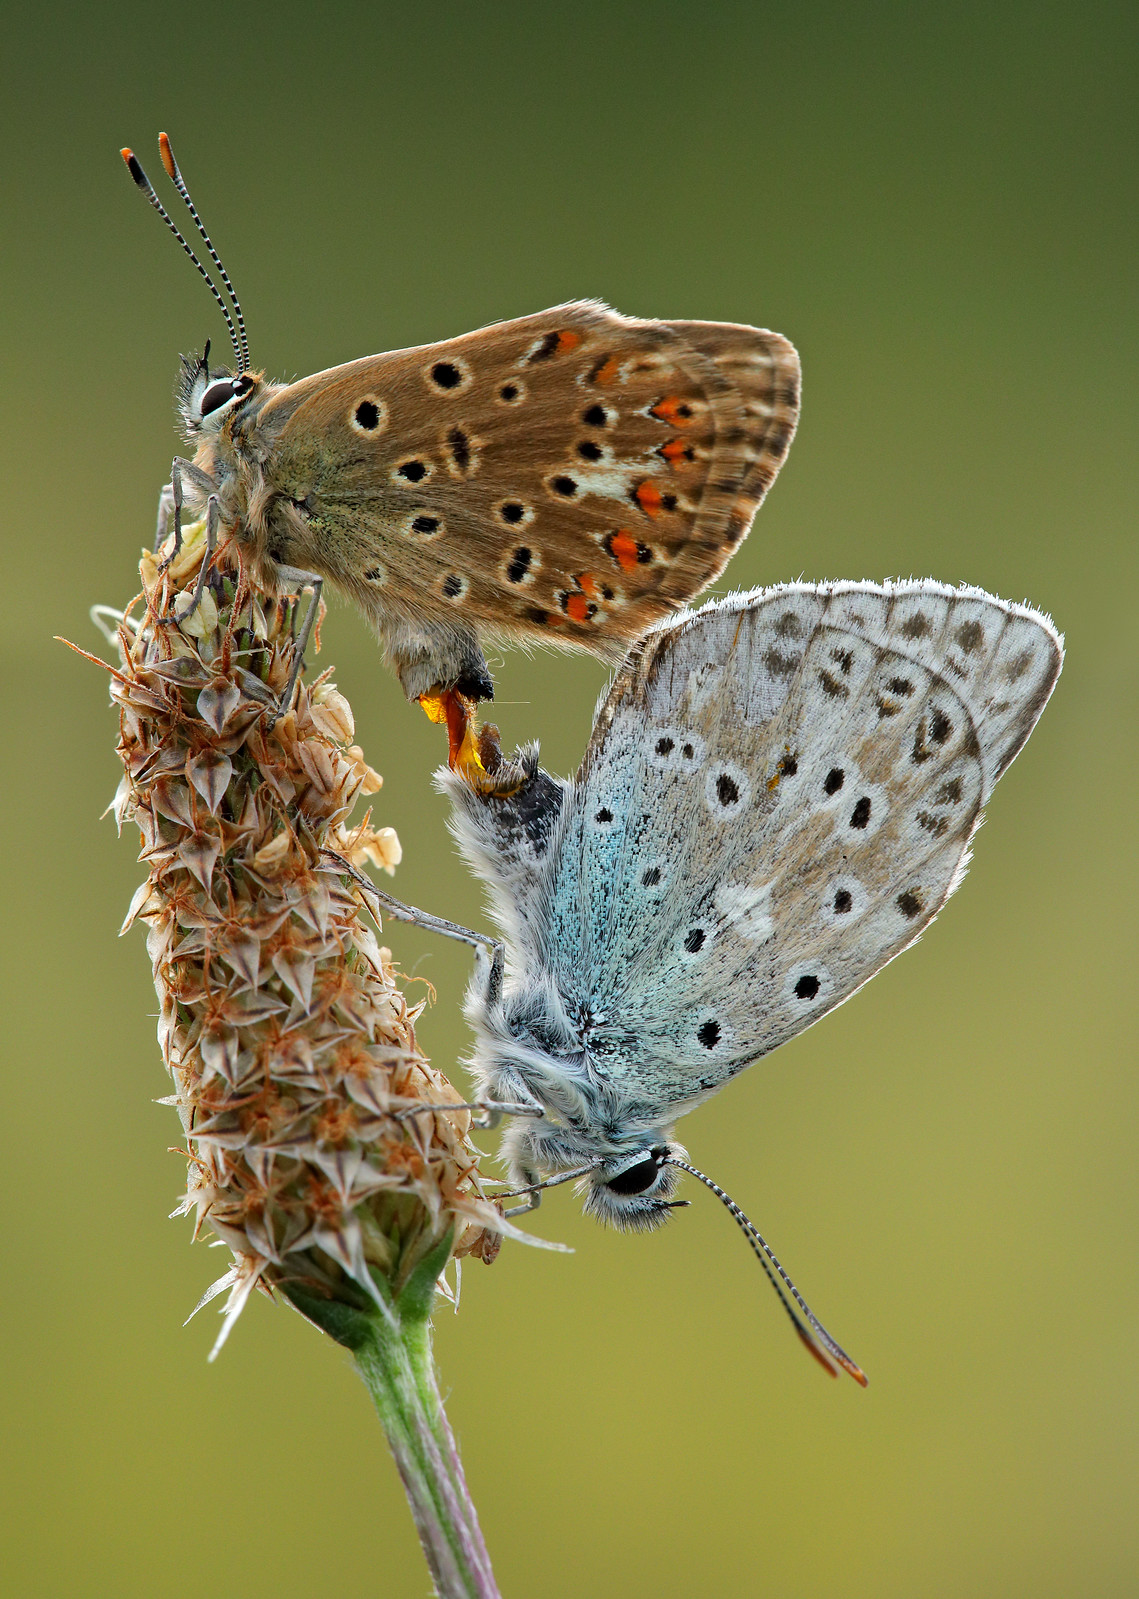 Mating Chalk Hill Blue Butterflies